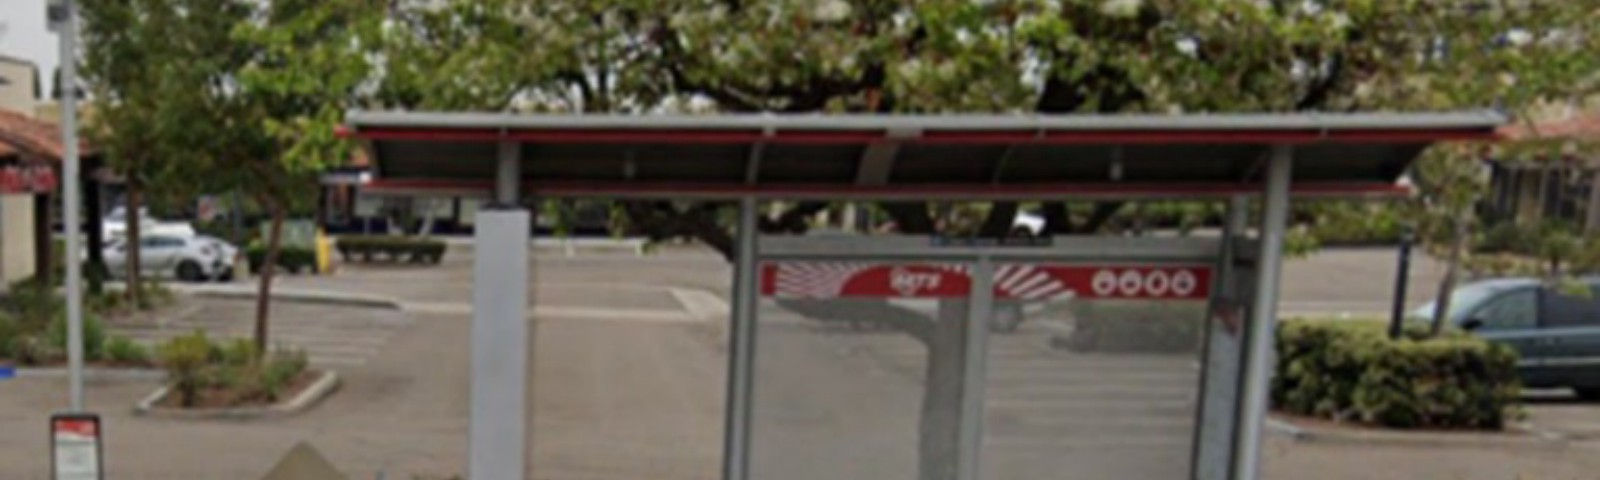 Silver San Diego MTS bus stop. Orange & white cones & construction A-frame to the left. Brown & grey sidewalk in front.